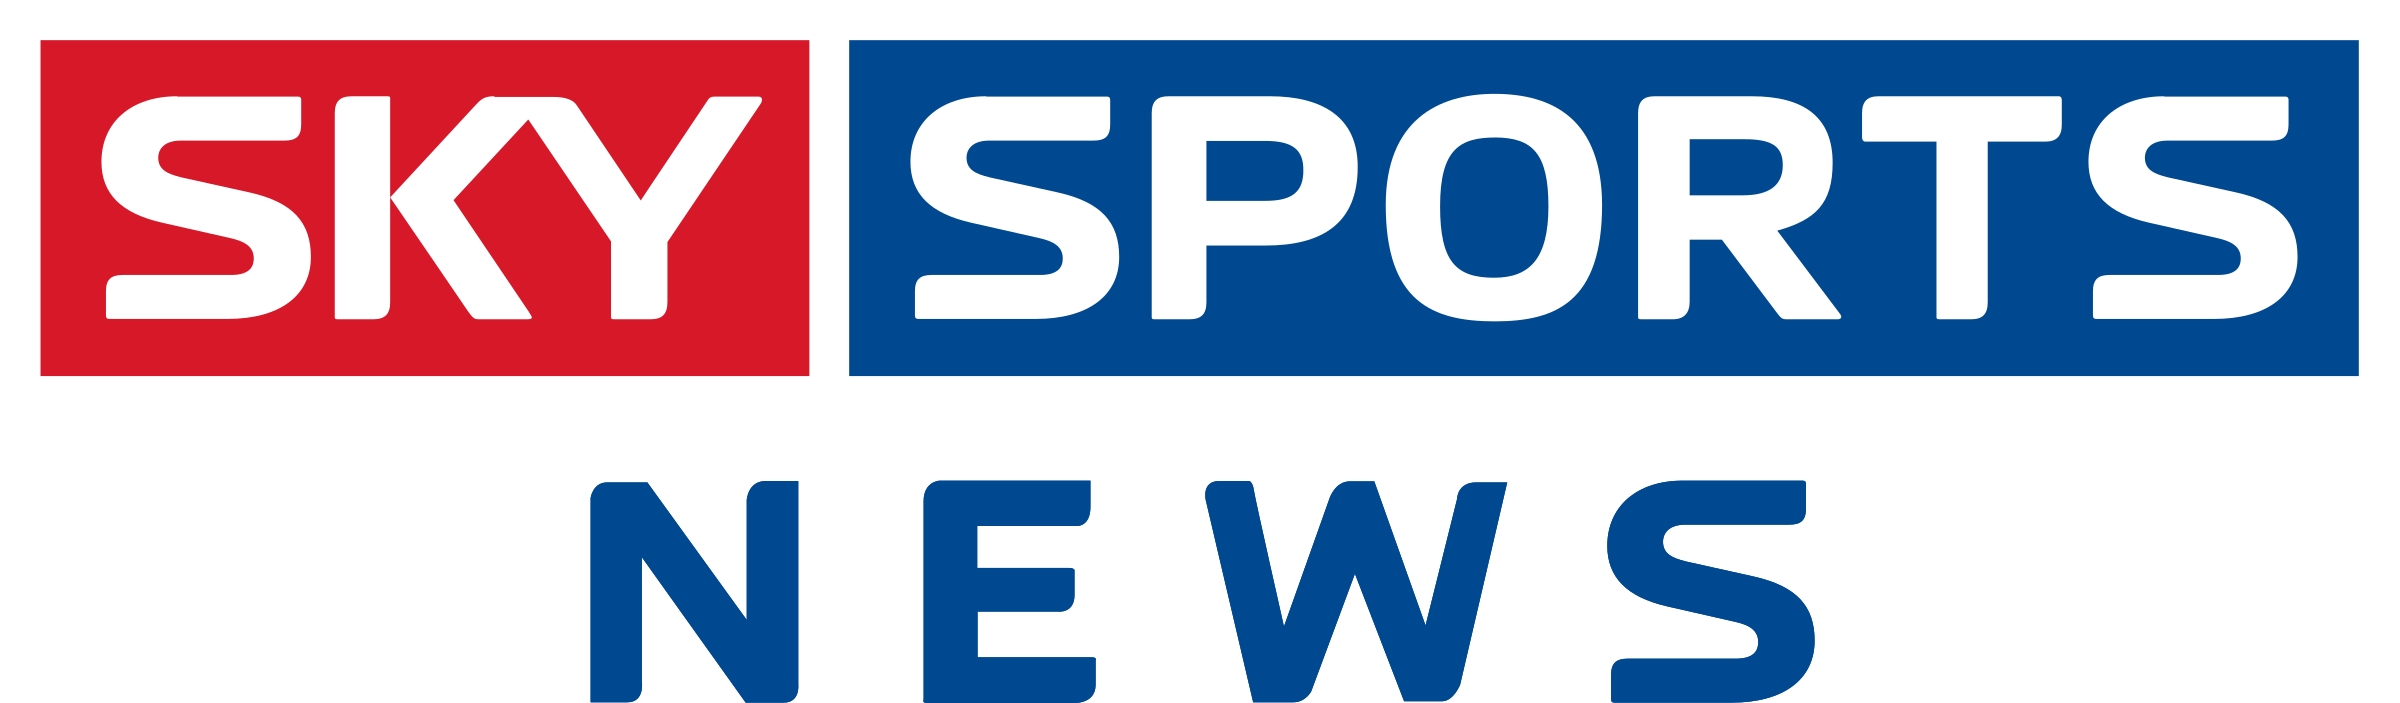 News transparent svg vector. Sky sports logo png clipart royalty free download